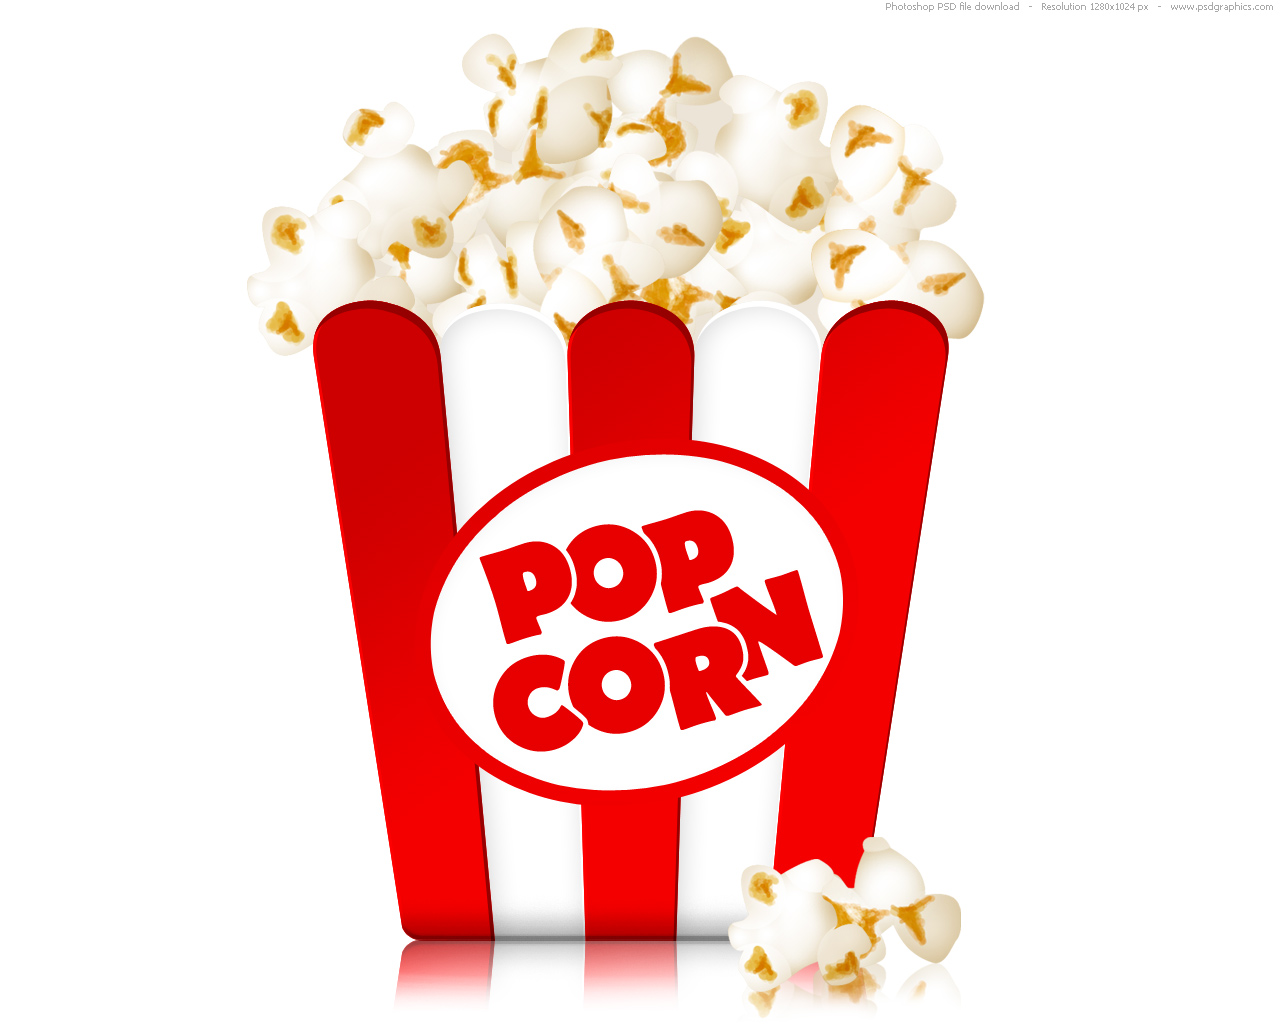 I'm going to get straight to the point here. Microwave popcorn! This stuff is sooooooo bad for you. Not only is is high in calories, butters and grease, ...